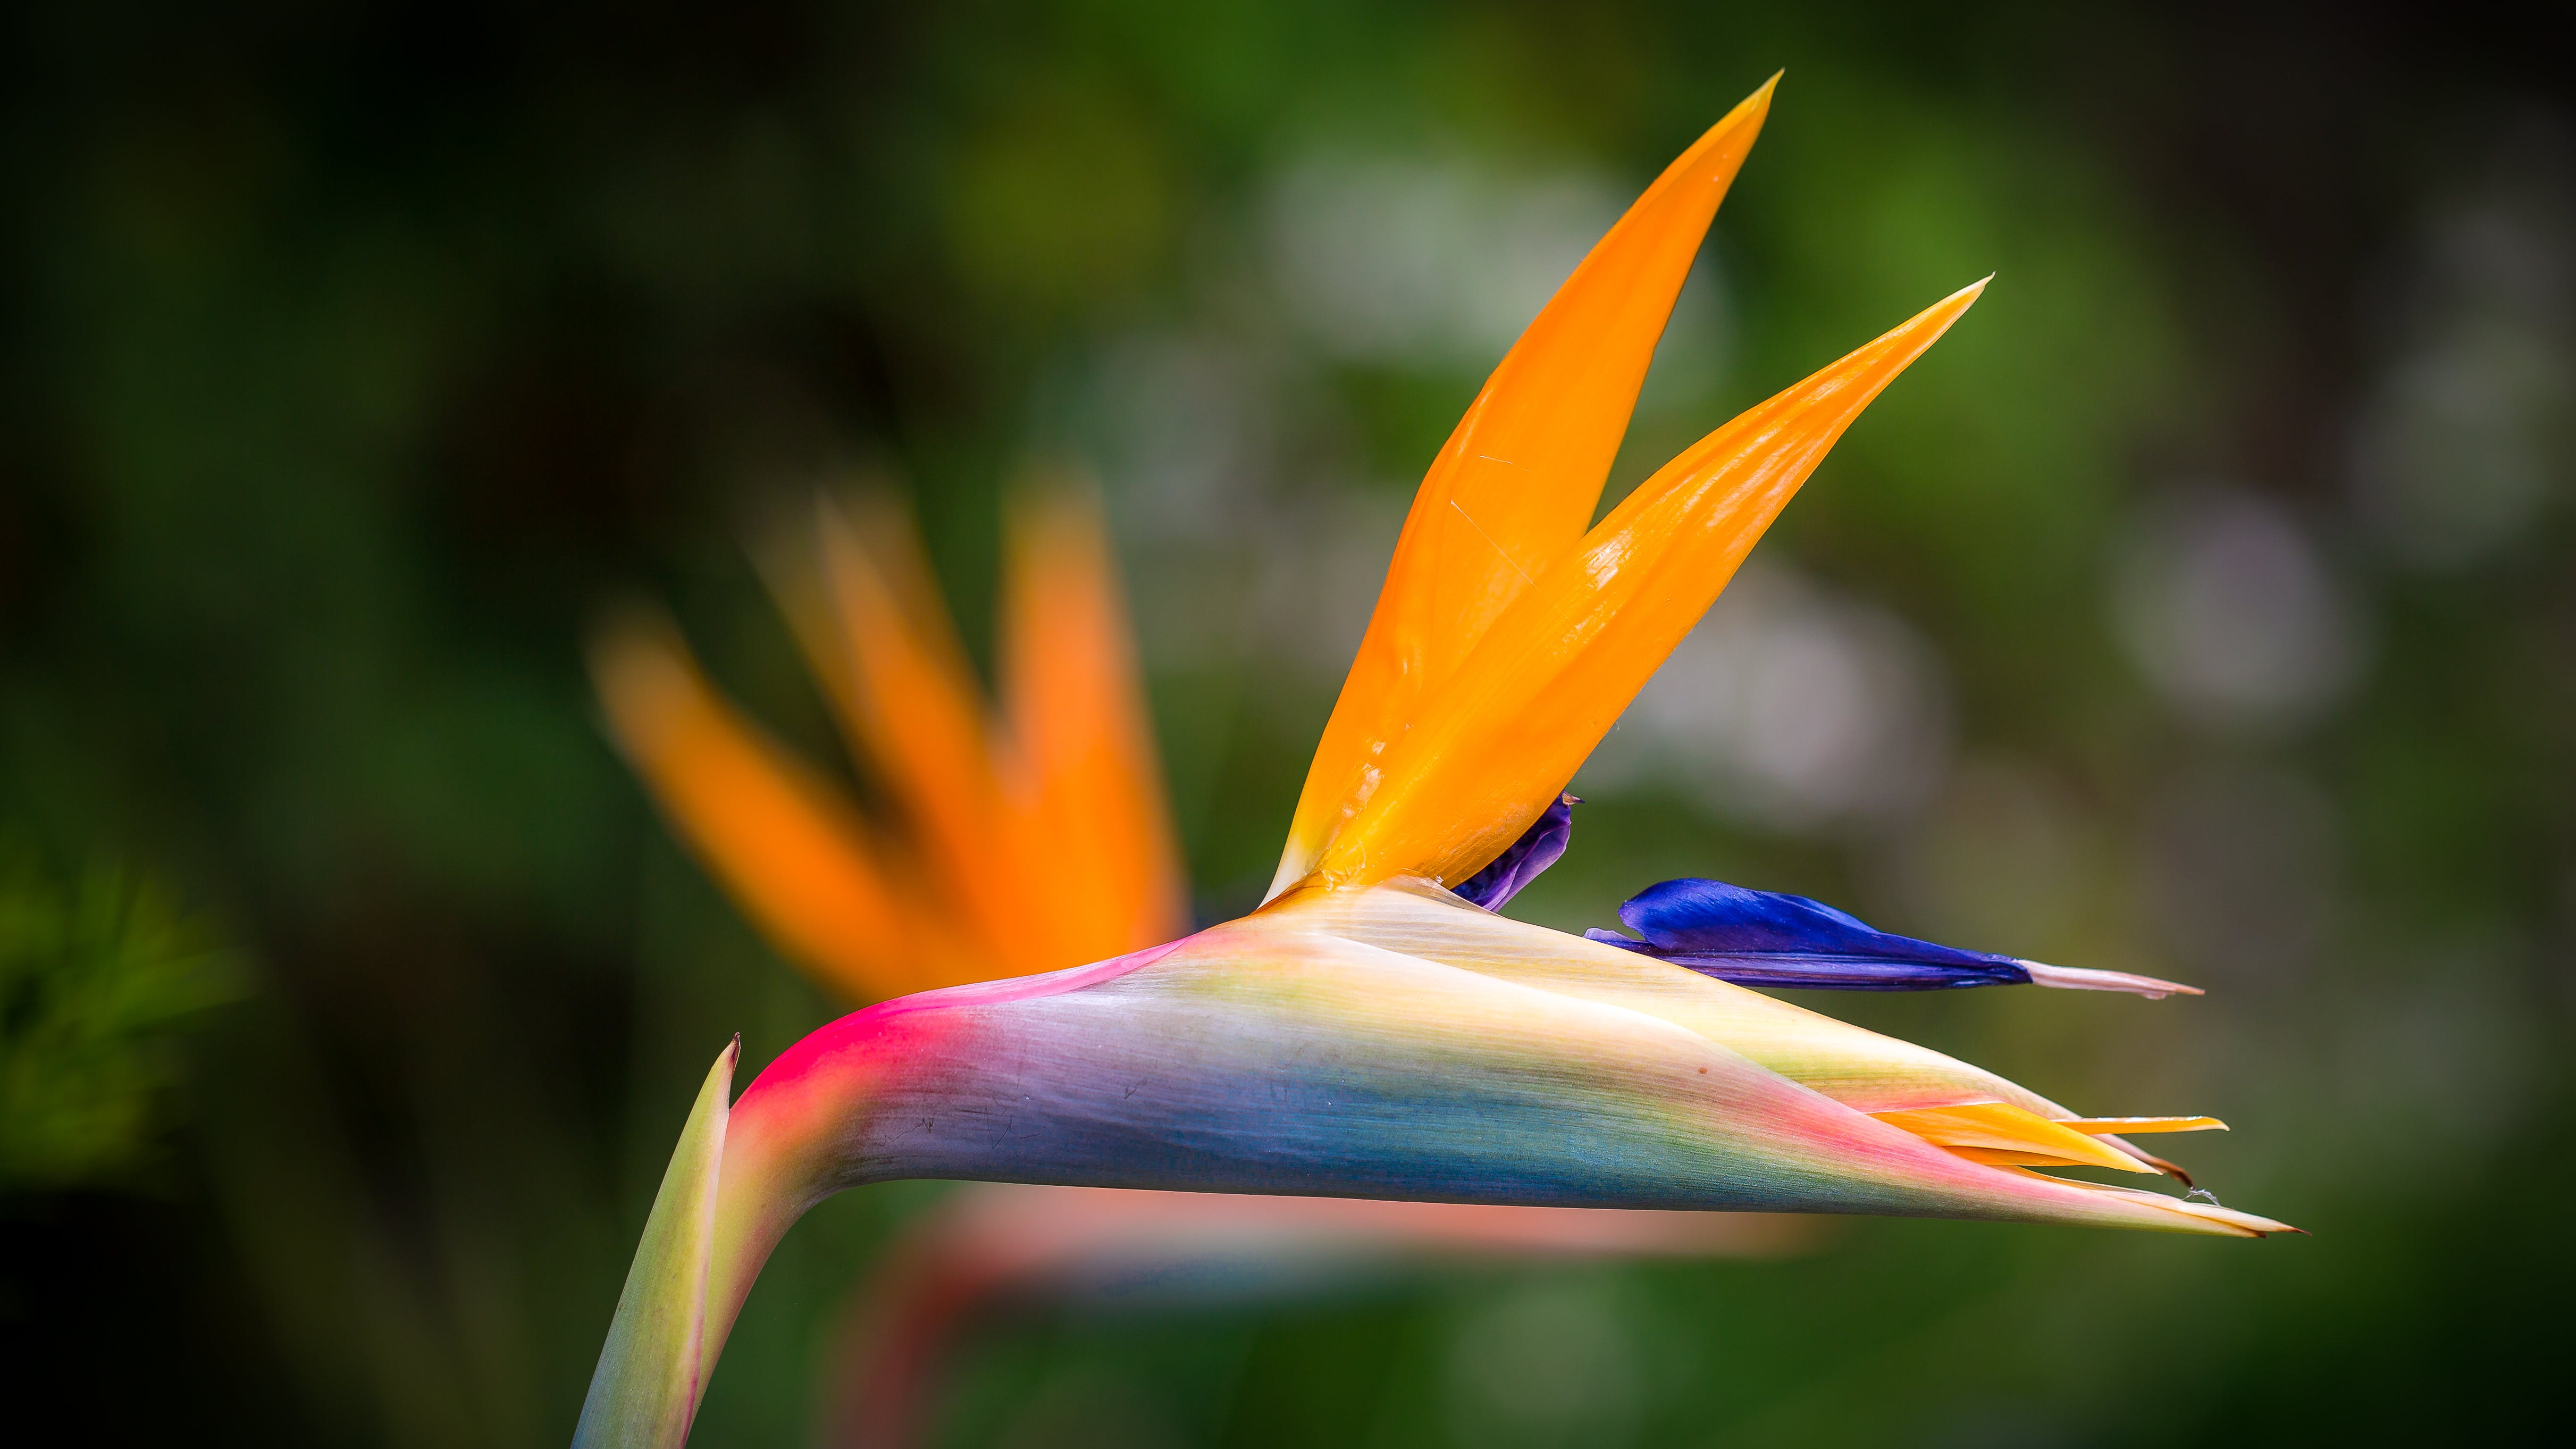 Closeup Photography of Bird of Paradise Flower